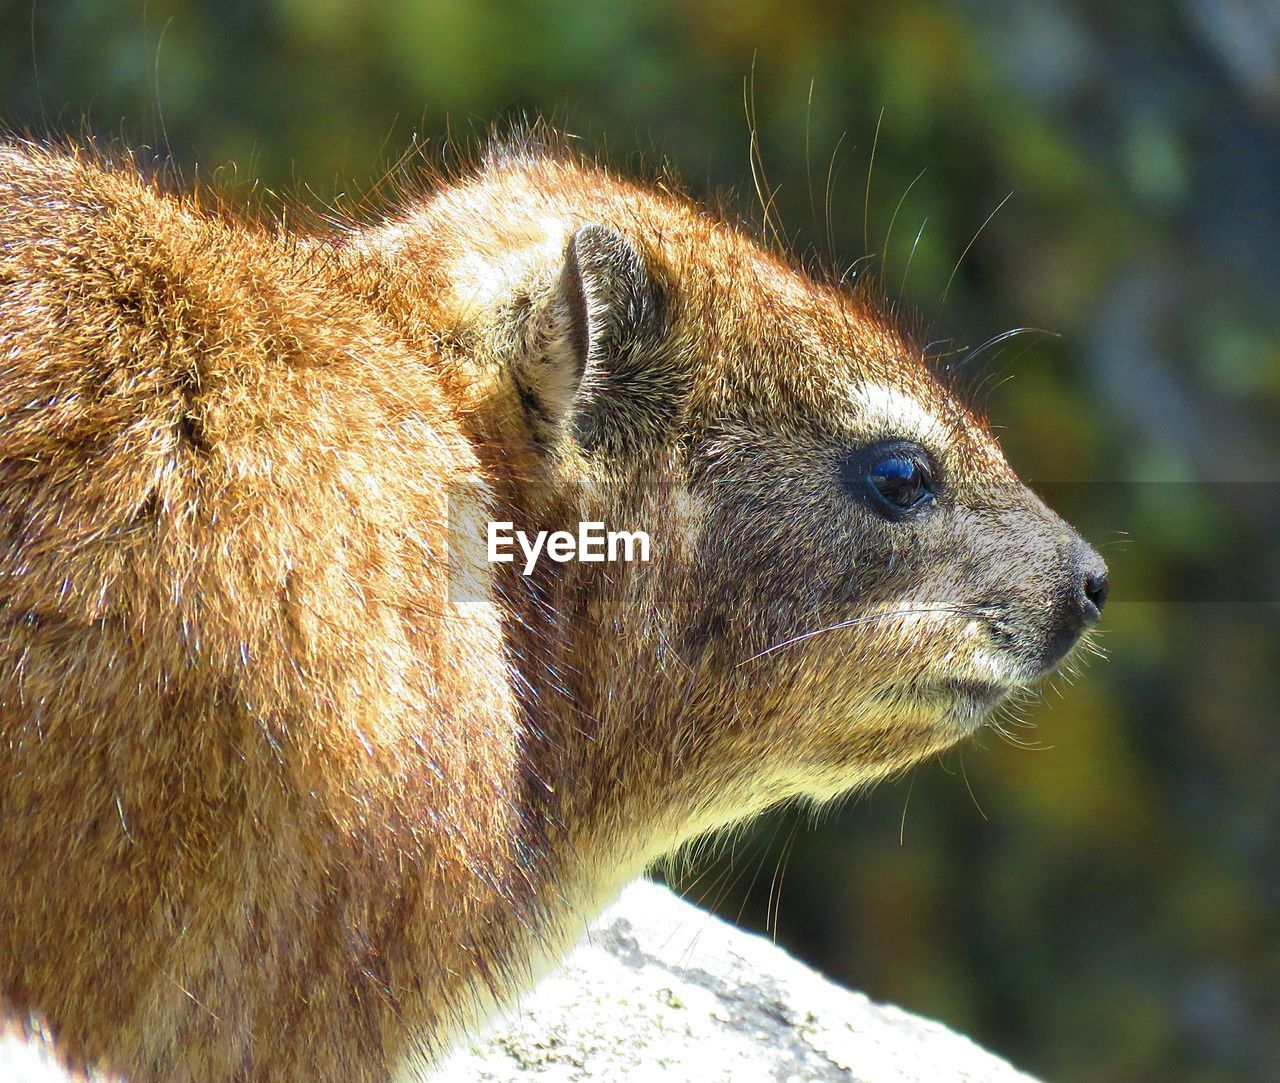 Close-up of hyrax looking away